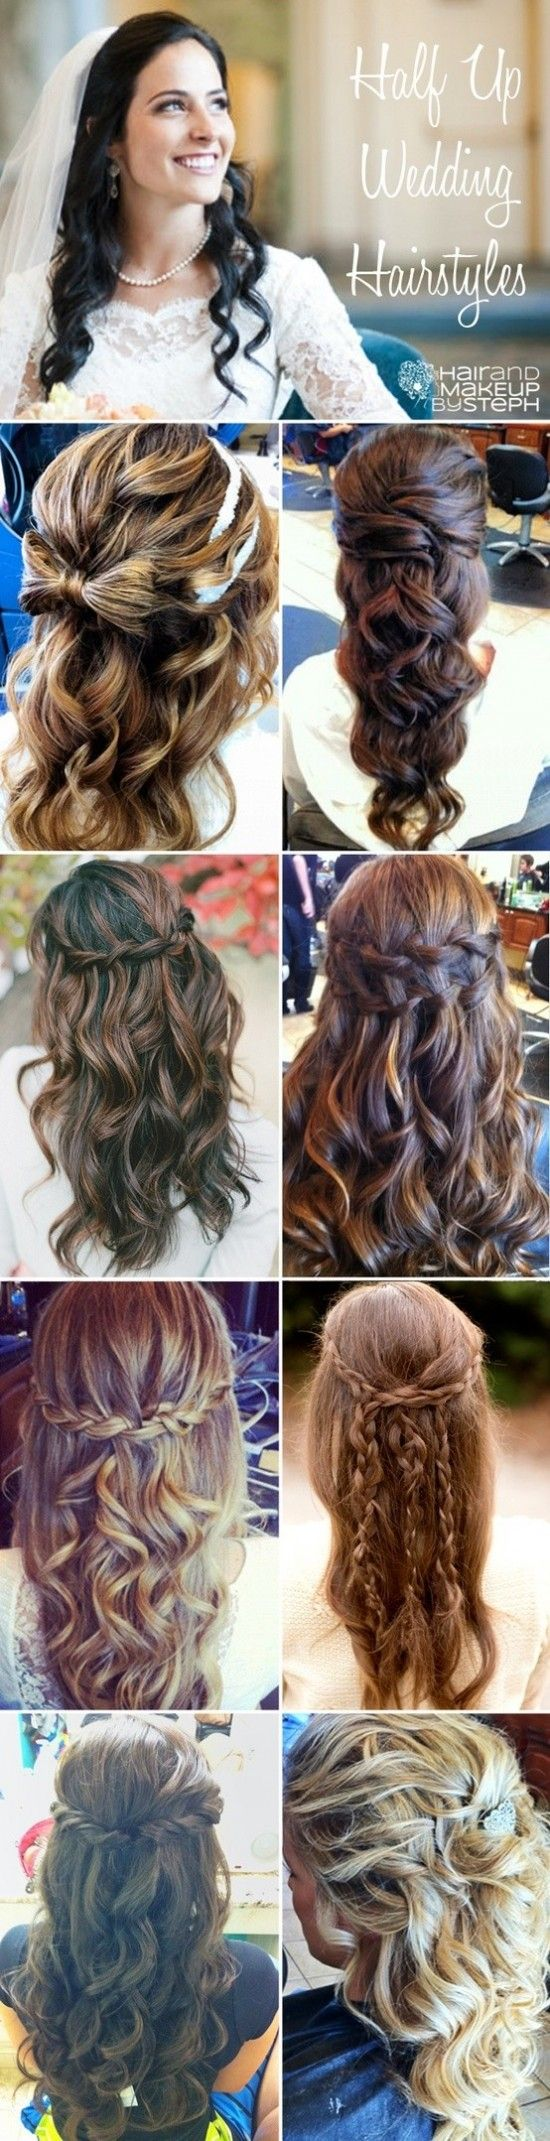 Tips For Wedding Hair Styles|Wedding Hair Style Long Hair For Girls|Fall Winter